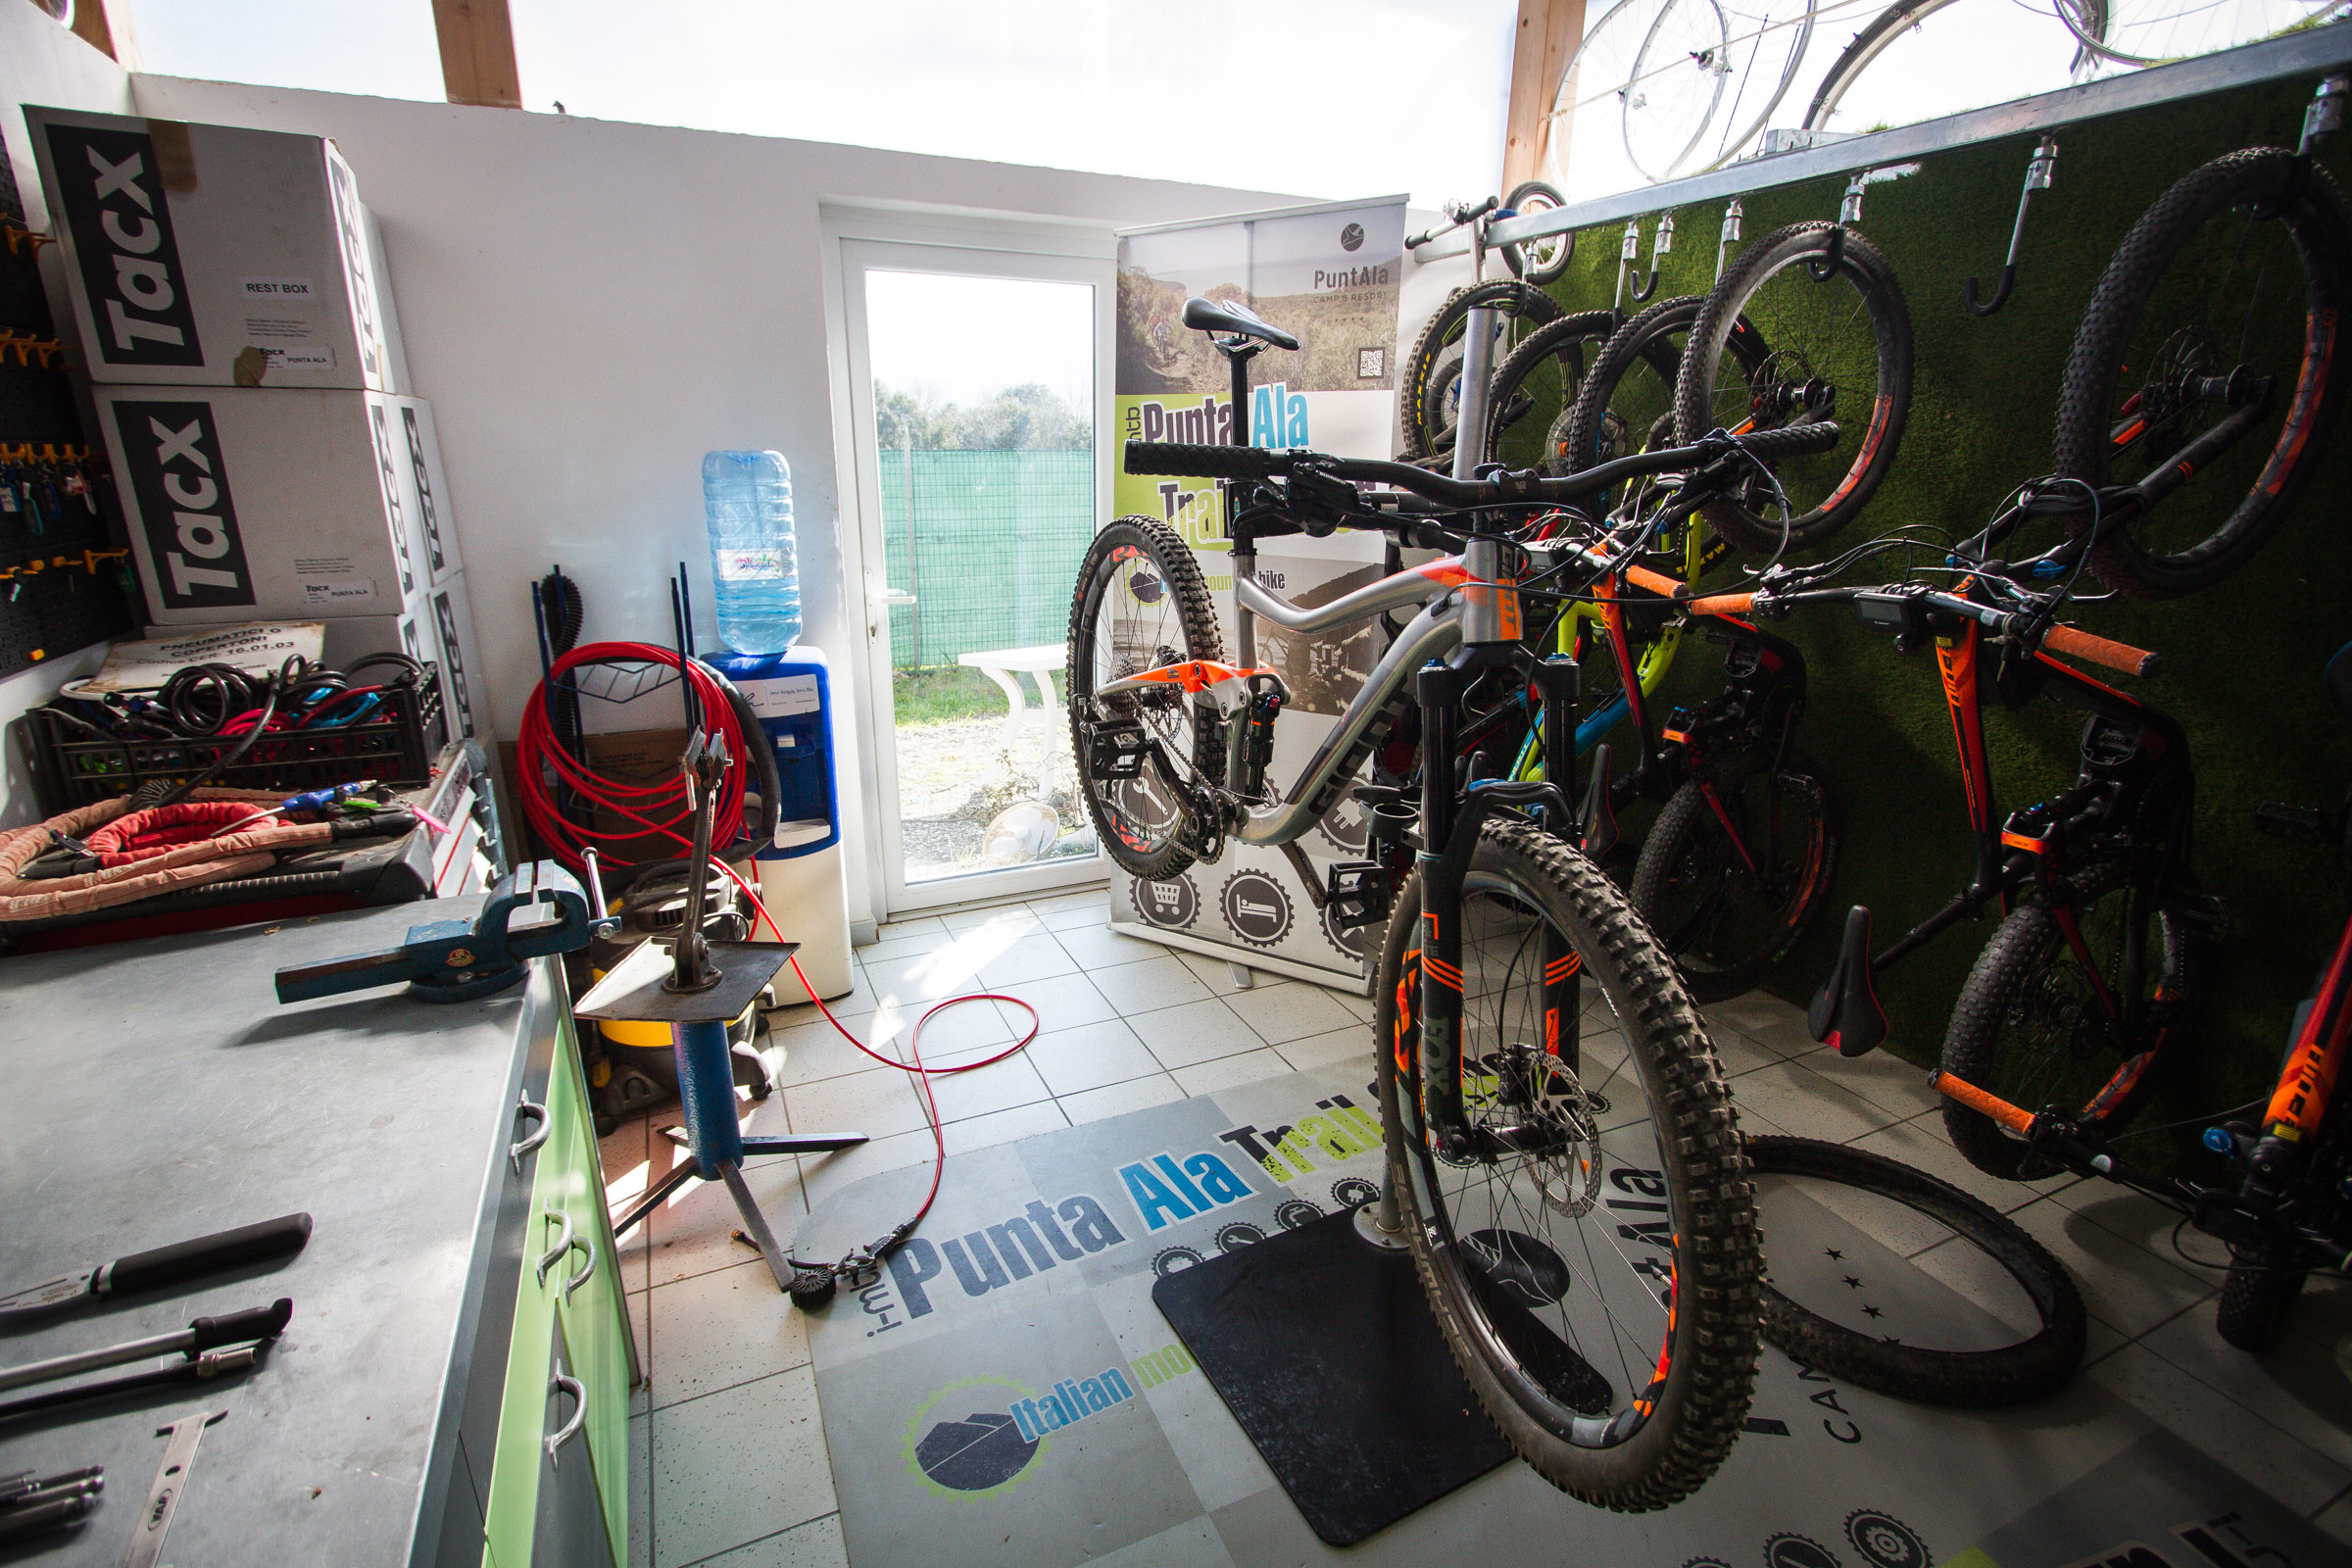 Our Giant Trance Enduro bike in the stand at the Punta Ala Trail Center Repair shop.